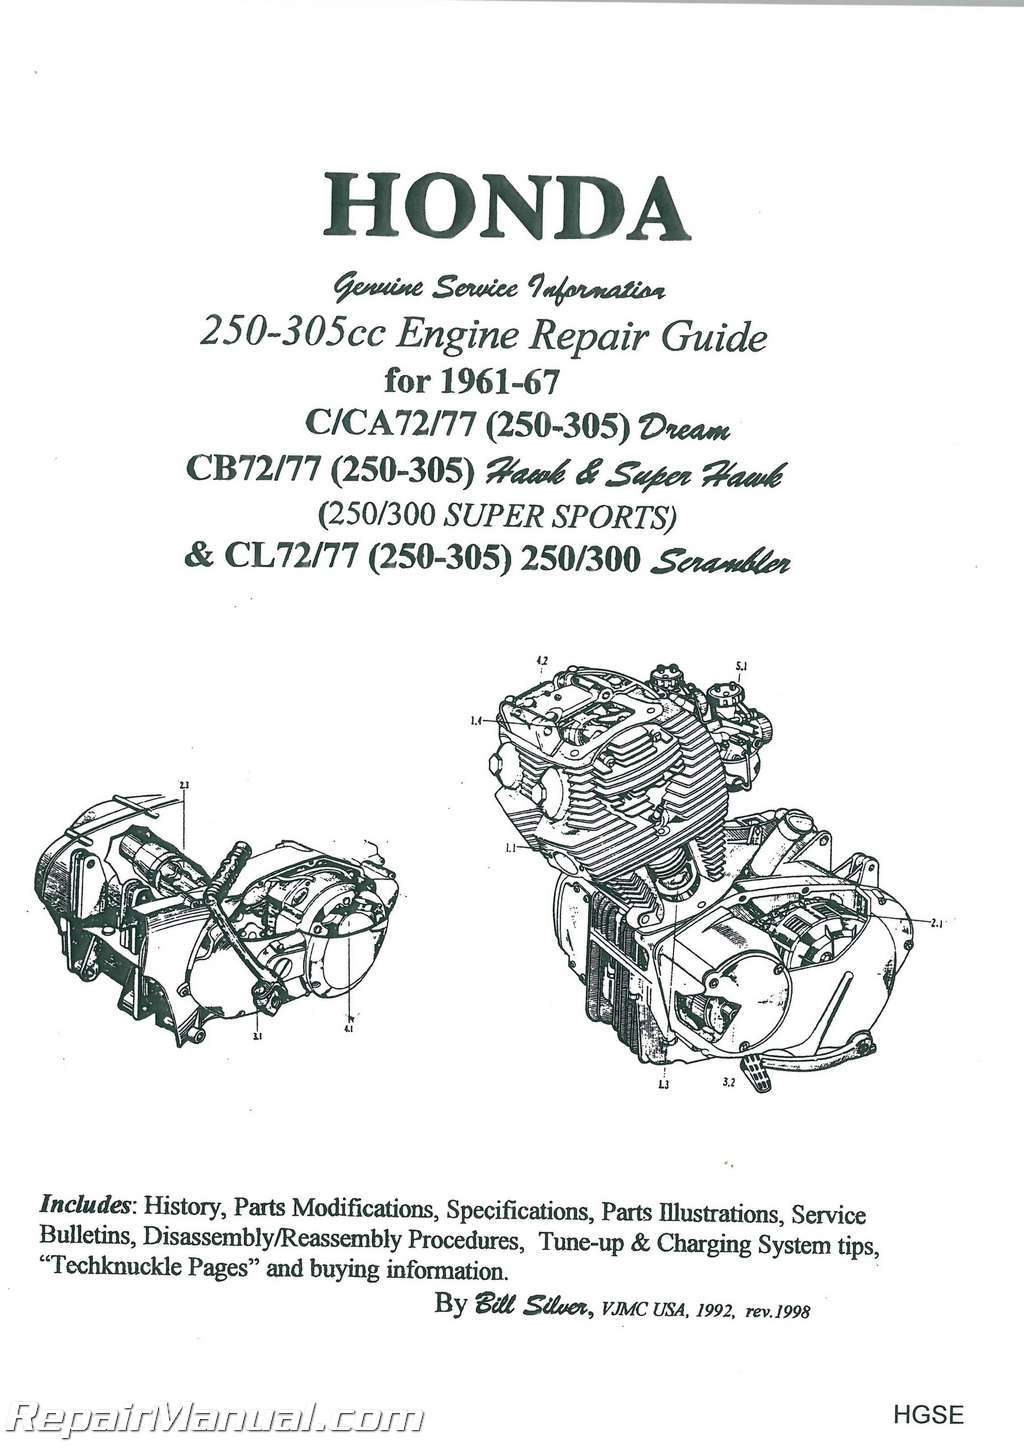 honda 250 305cc dream hawk super hawk motorcycle engine repair guide rh repairmanual com honda parts interchange guide honda parts guide